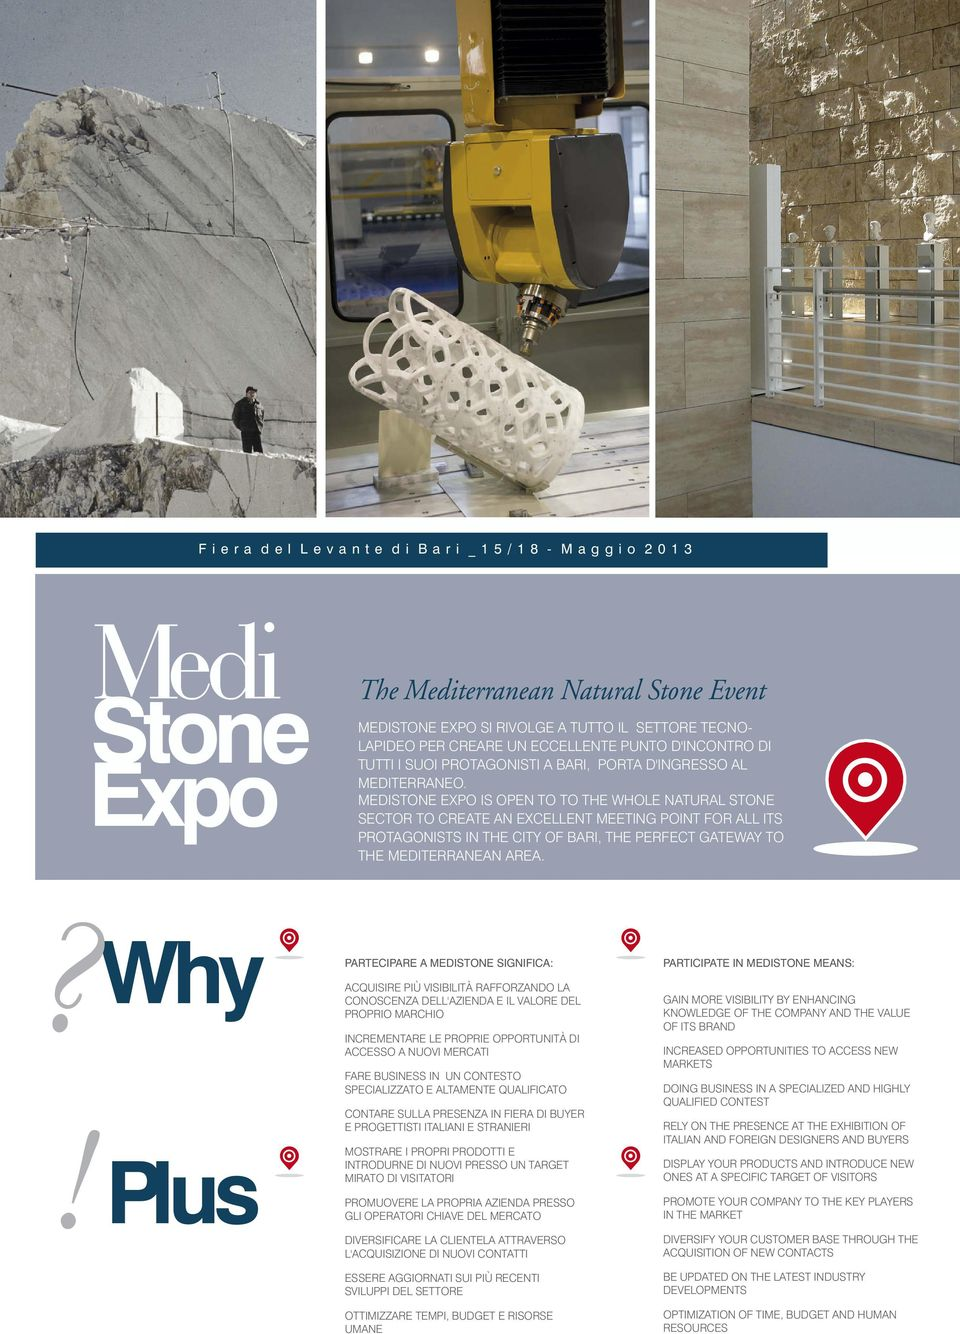 MEDISTONE EXPO IS OPEN TO TO THE WHOLE NATURAL STONE SECTOR TO CREATE AN EXCELLENT MEETING POINT FOR ALL ITS PROTAGONISTS IN THE CITY OF BARI, THE PERFECT GATEWAY TO THE MEDITERRANEAN AREA.